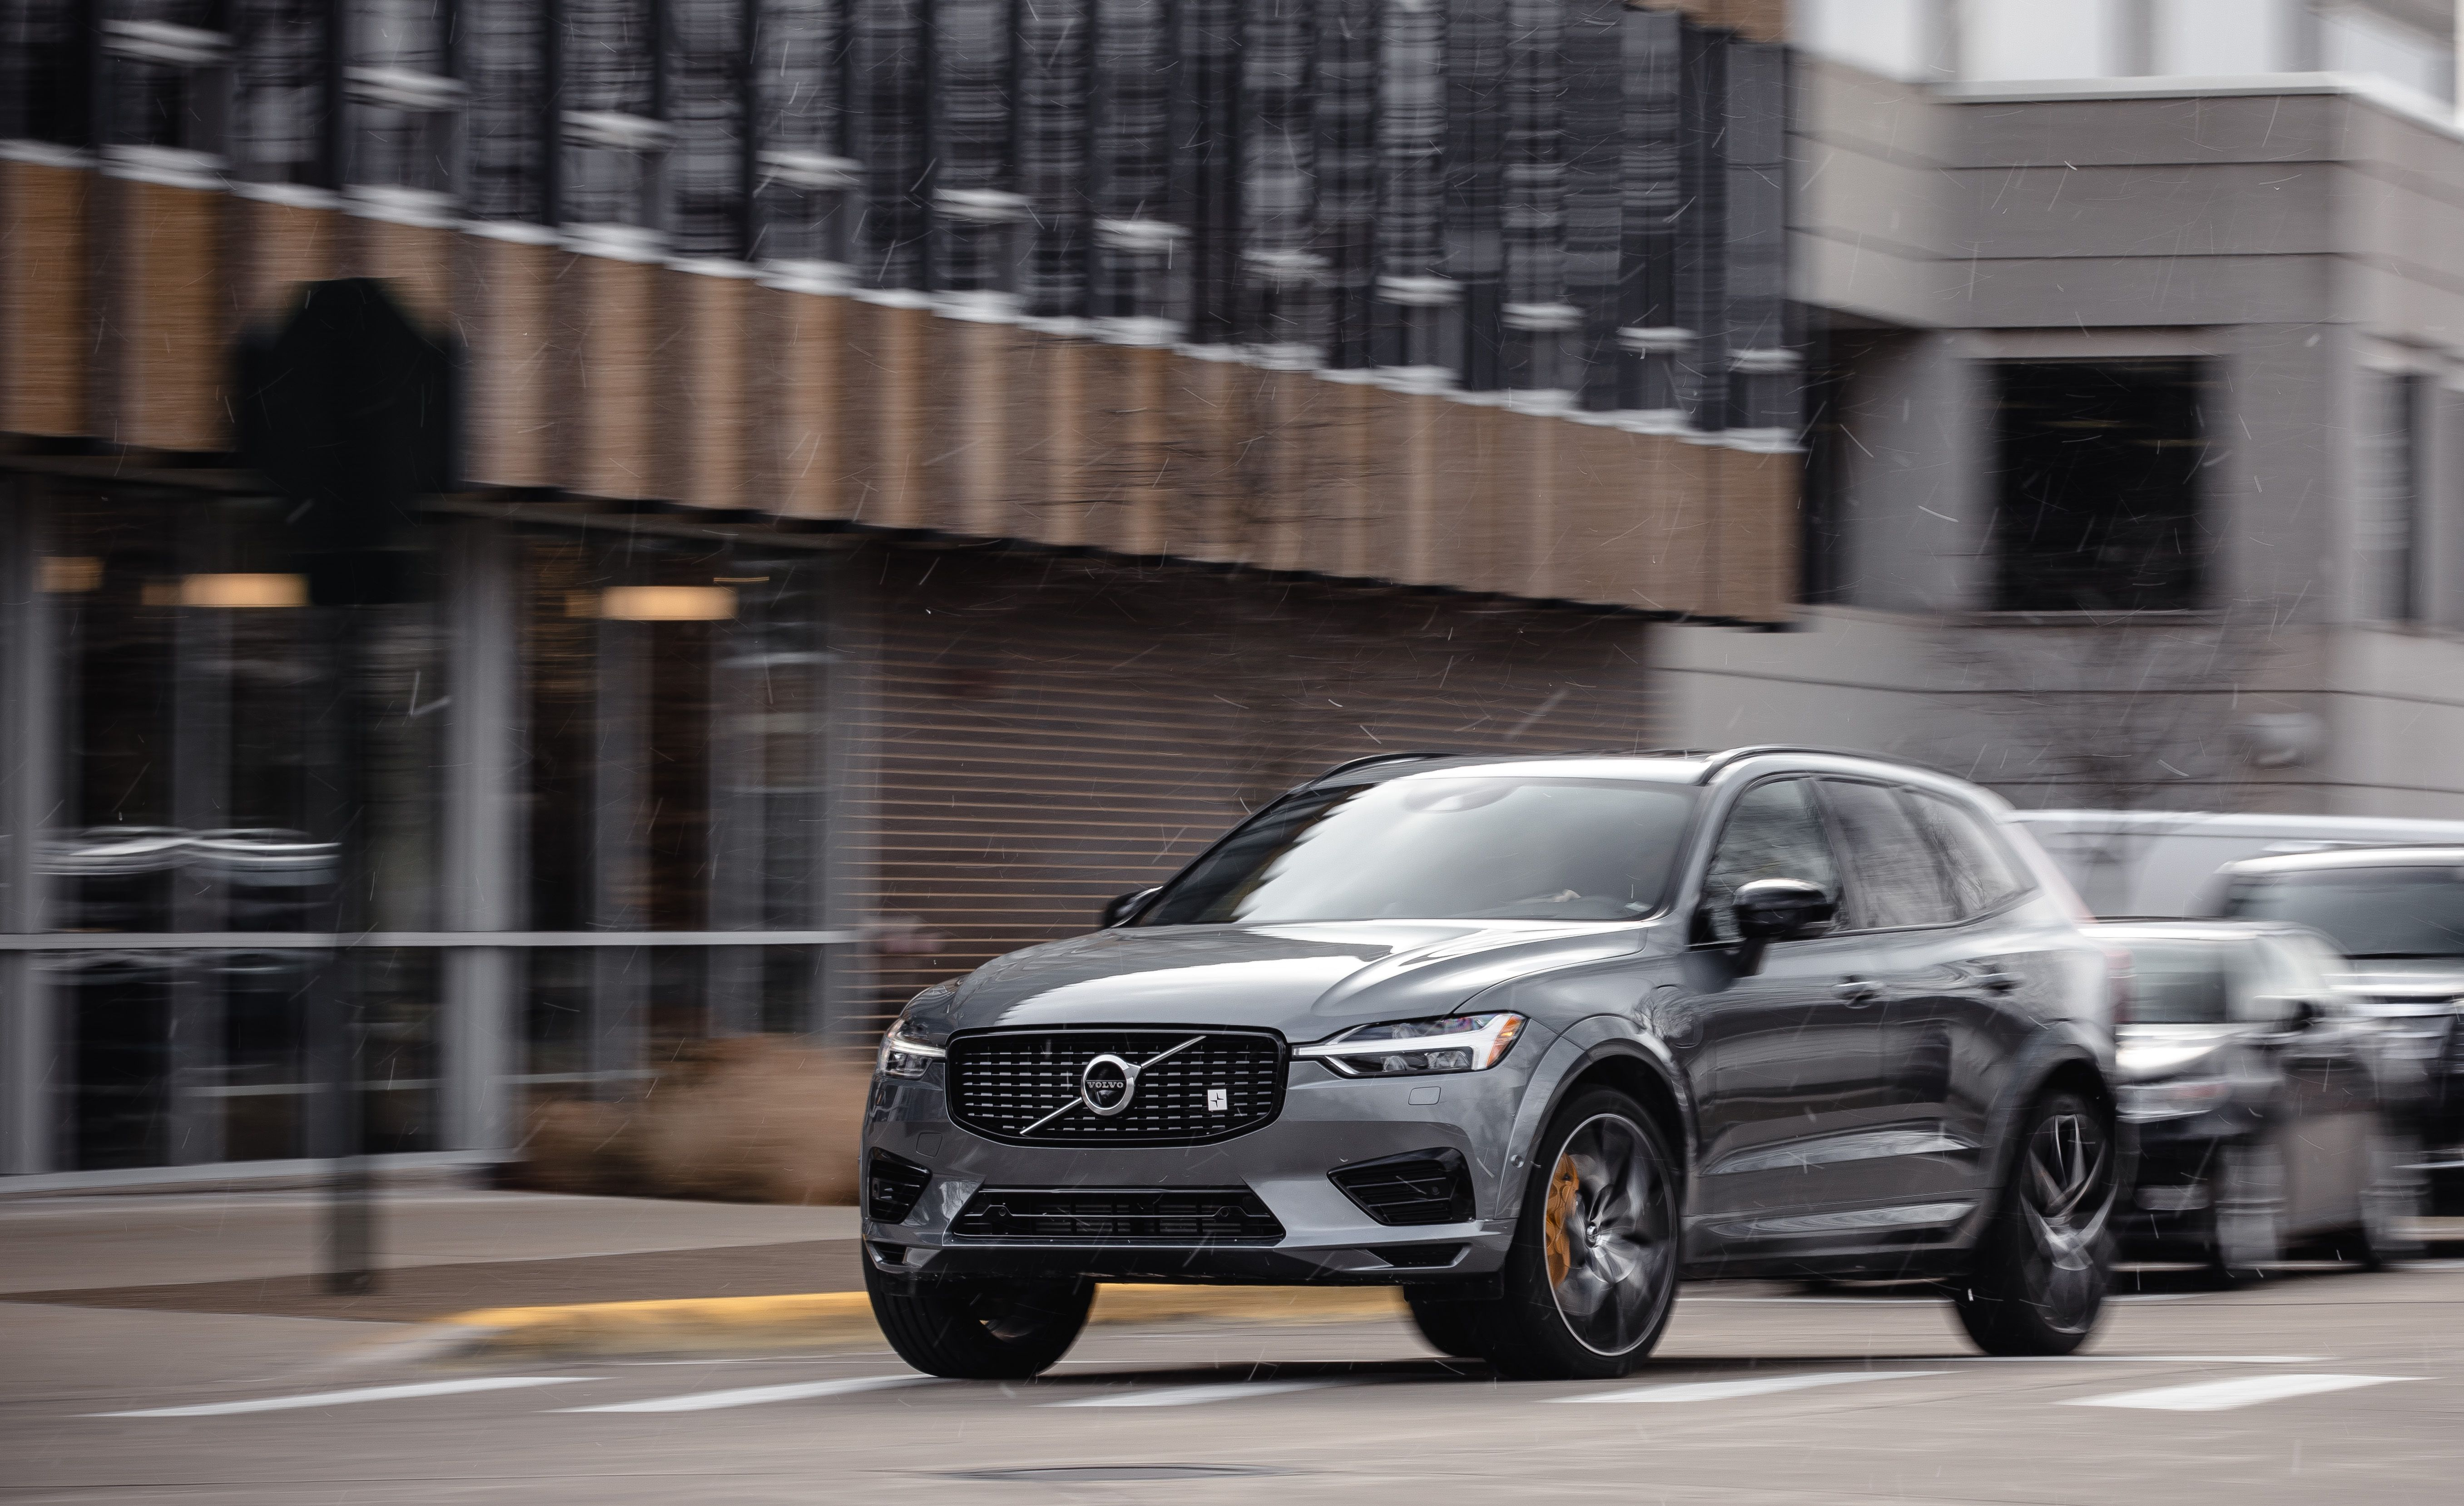 2020 Volvo Xc60 T8 Polestar The Hybrid Is The Quick One